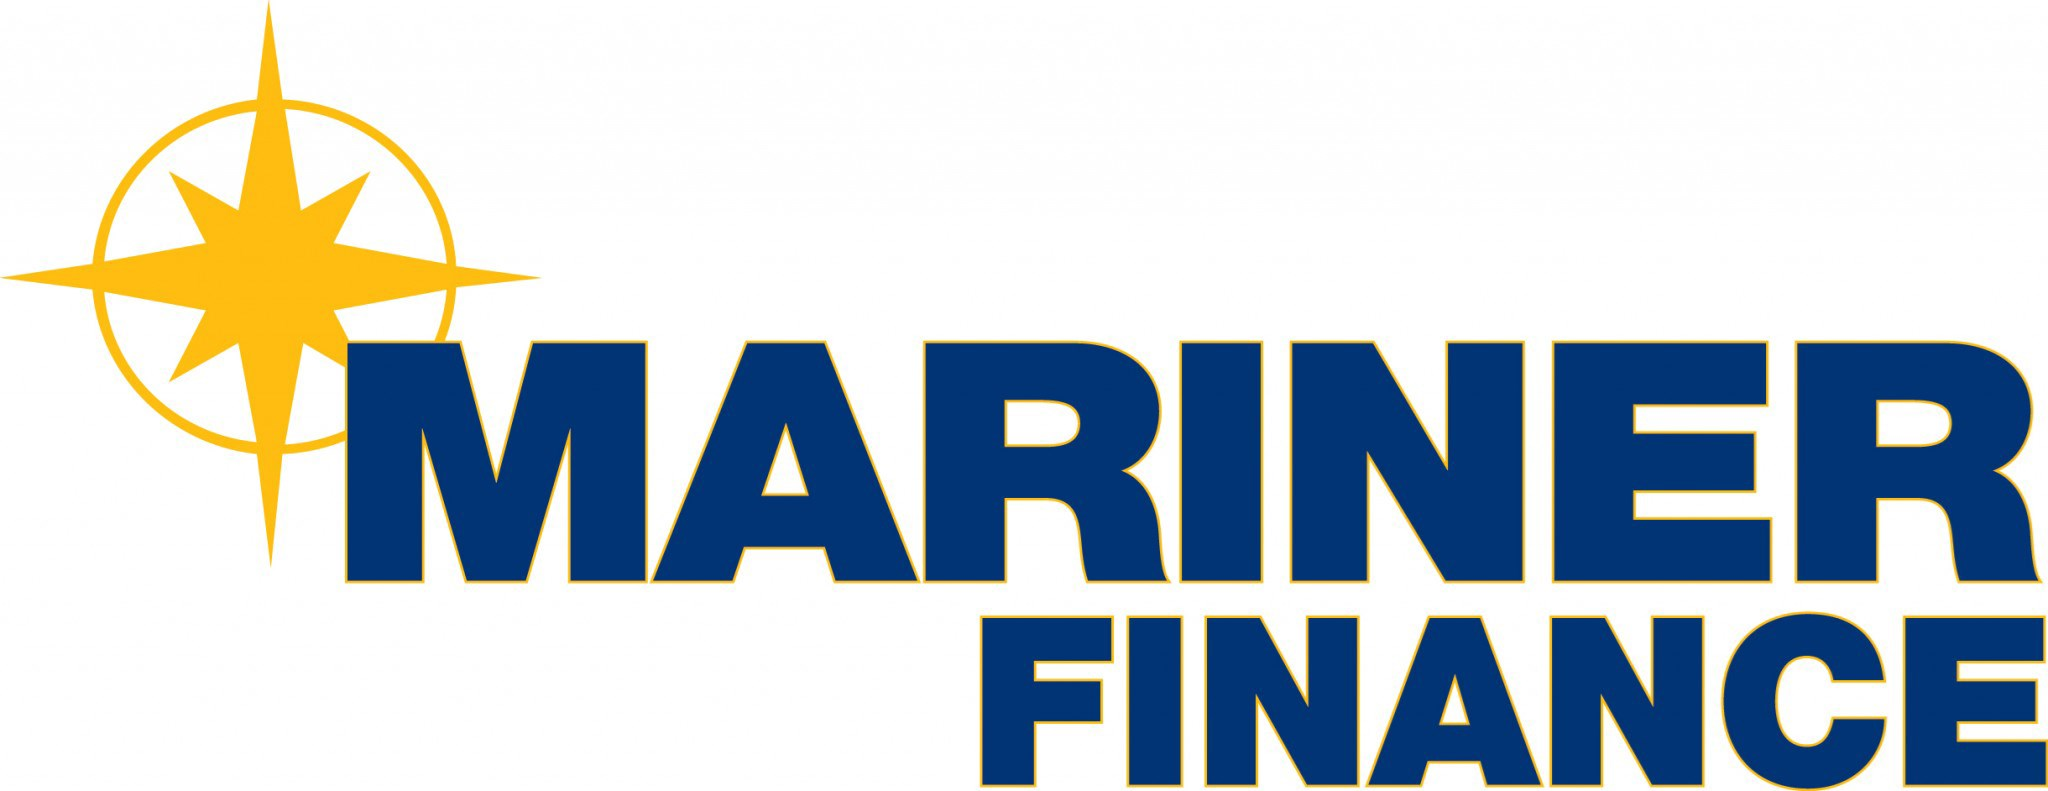 Mariner Financing Logo